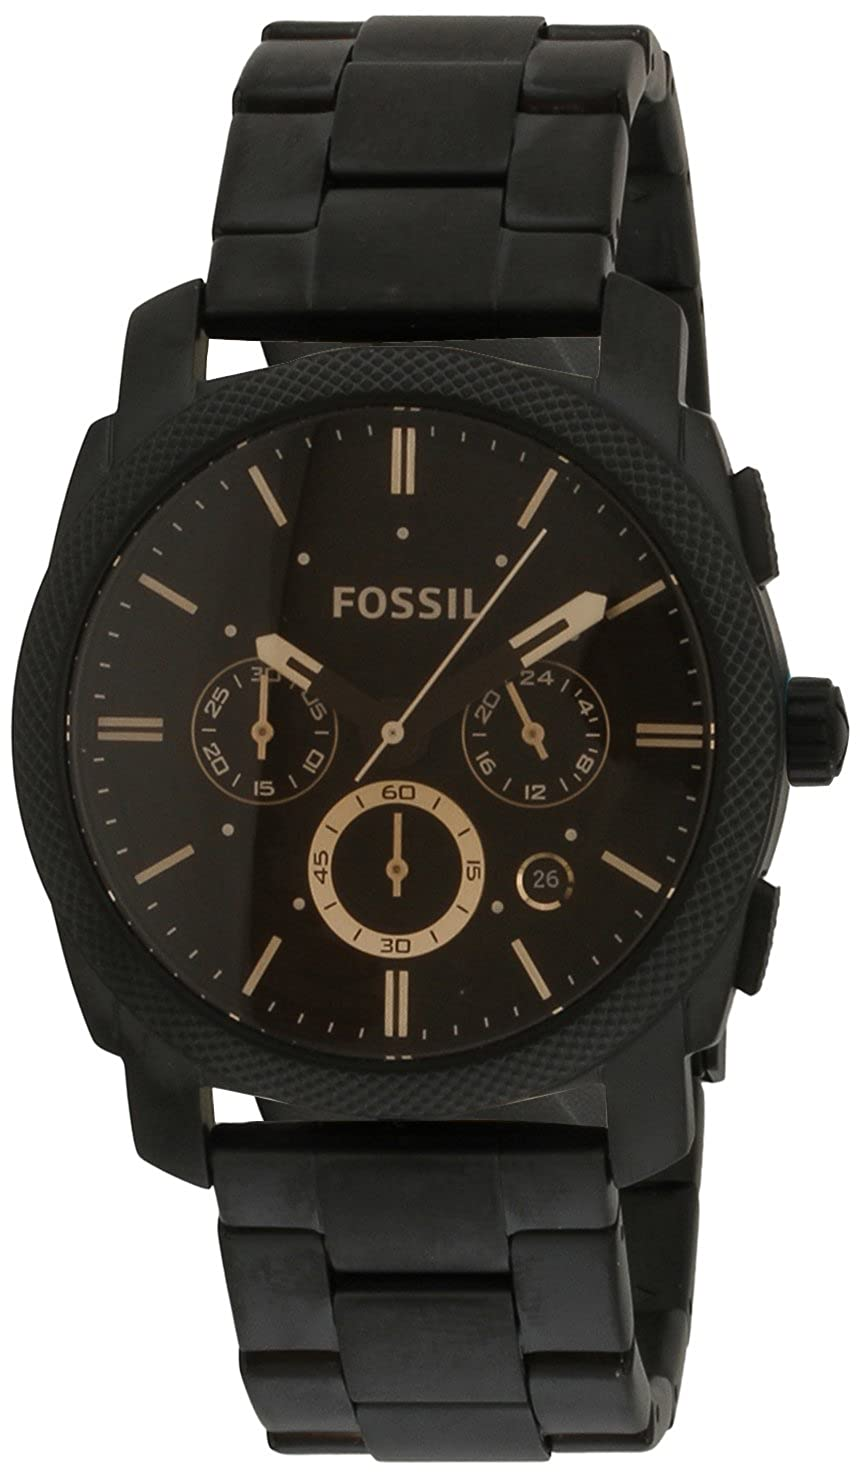 f5a97df2c09 Buy Fossil Machine Chronograph Black Dial Men s Watch - FS4682 Online at  Low Prices in India - Amazon.in